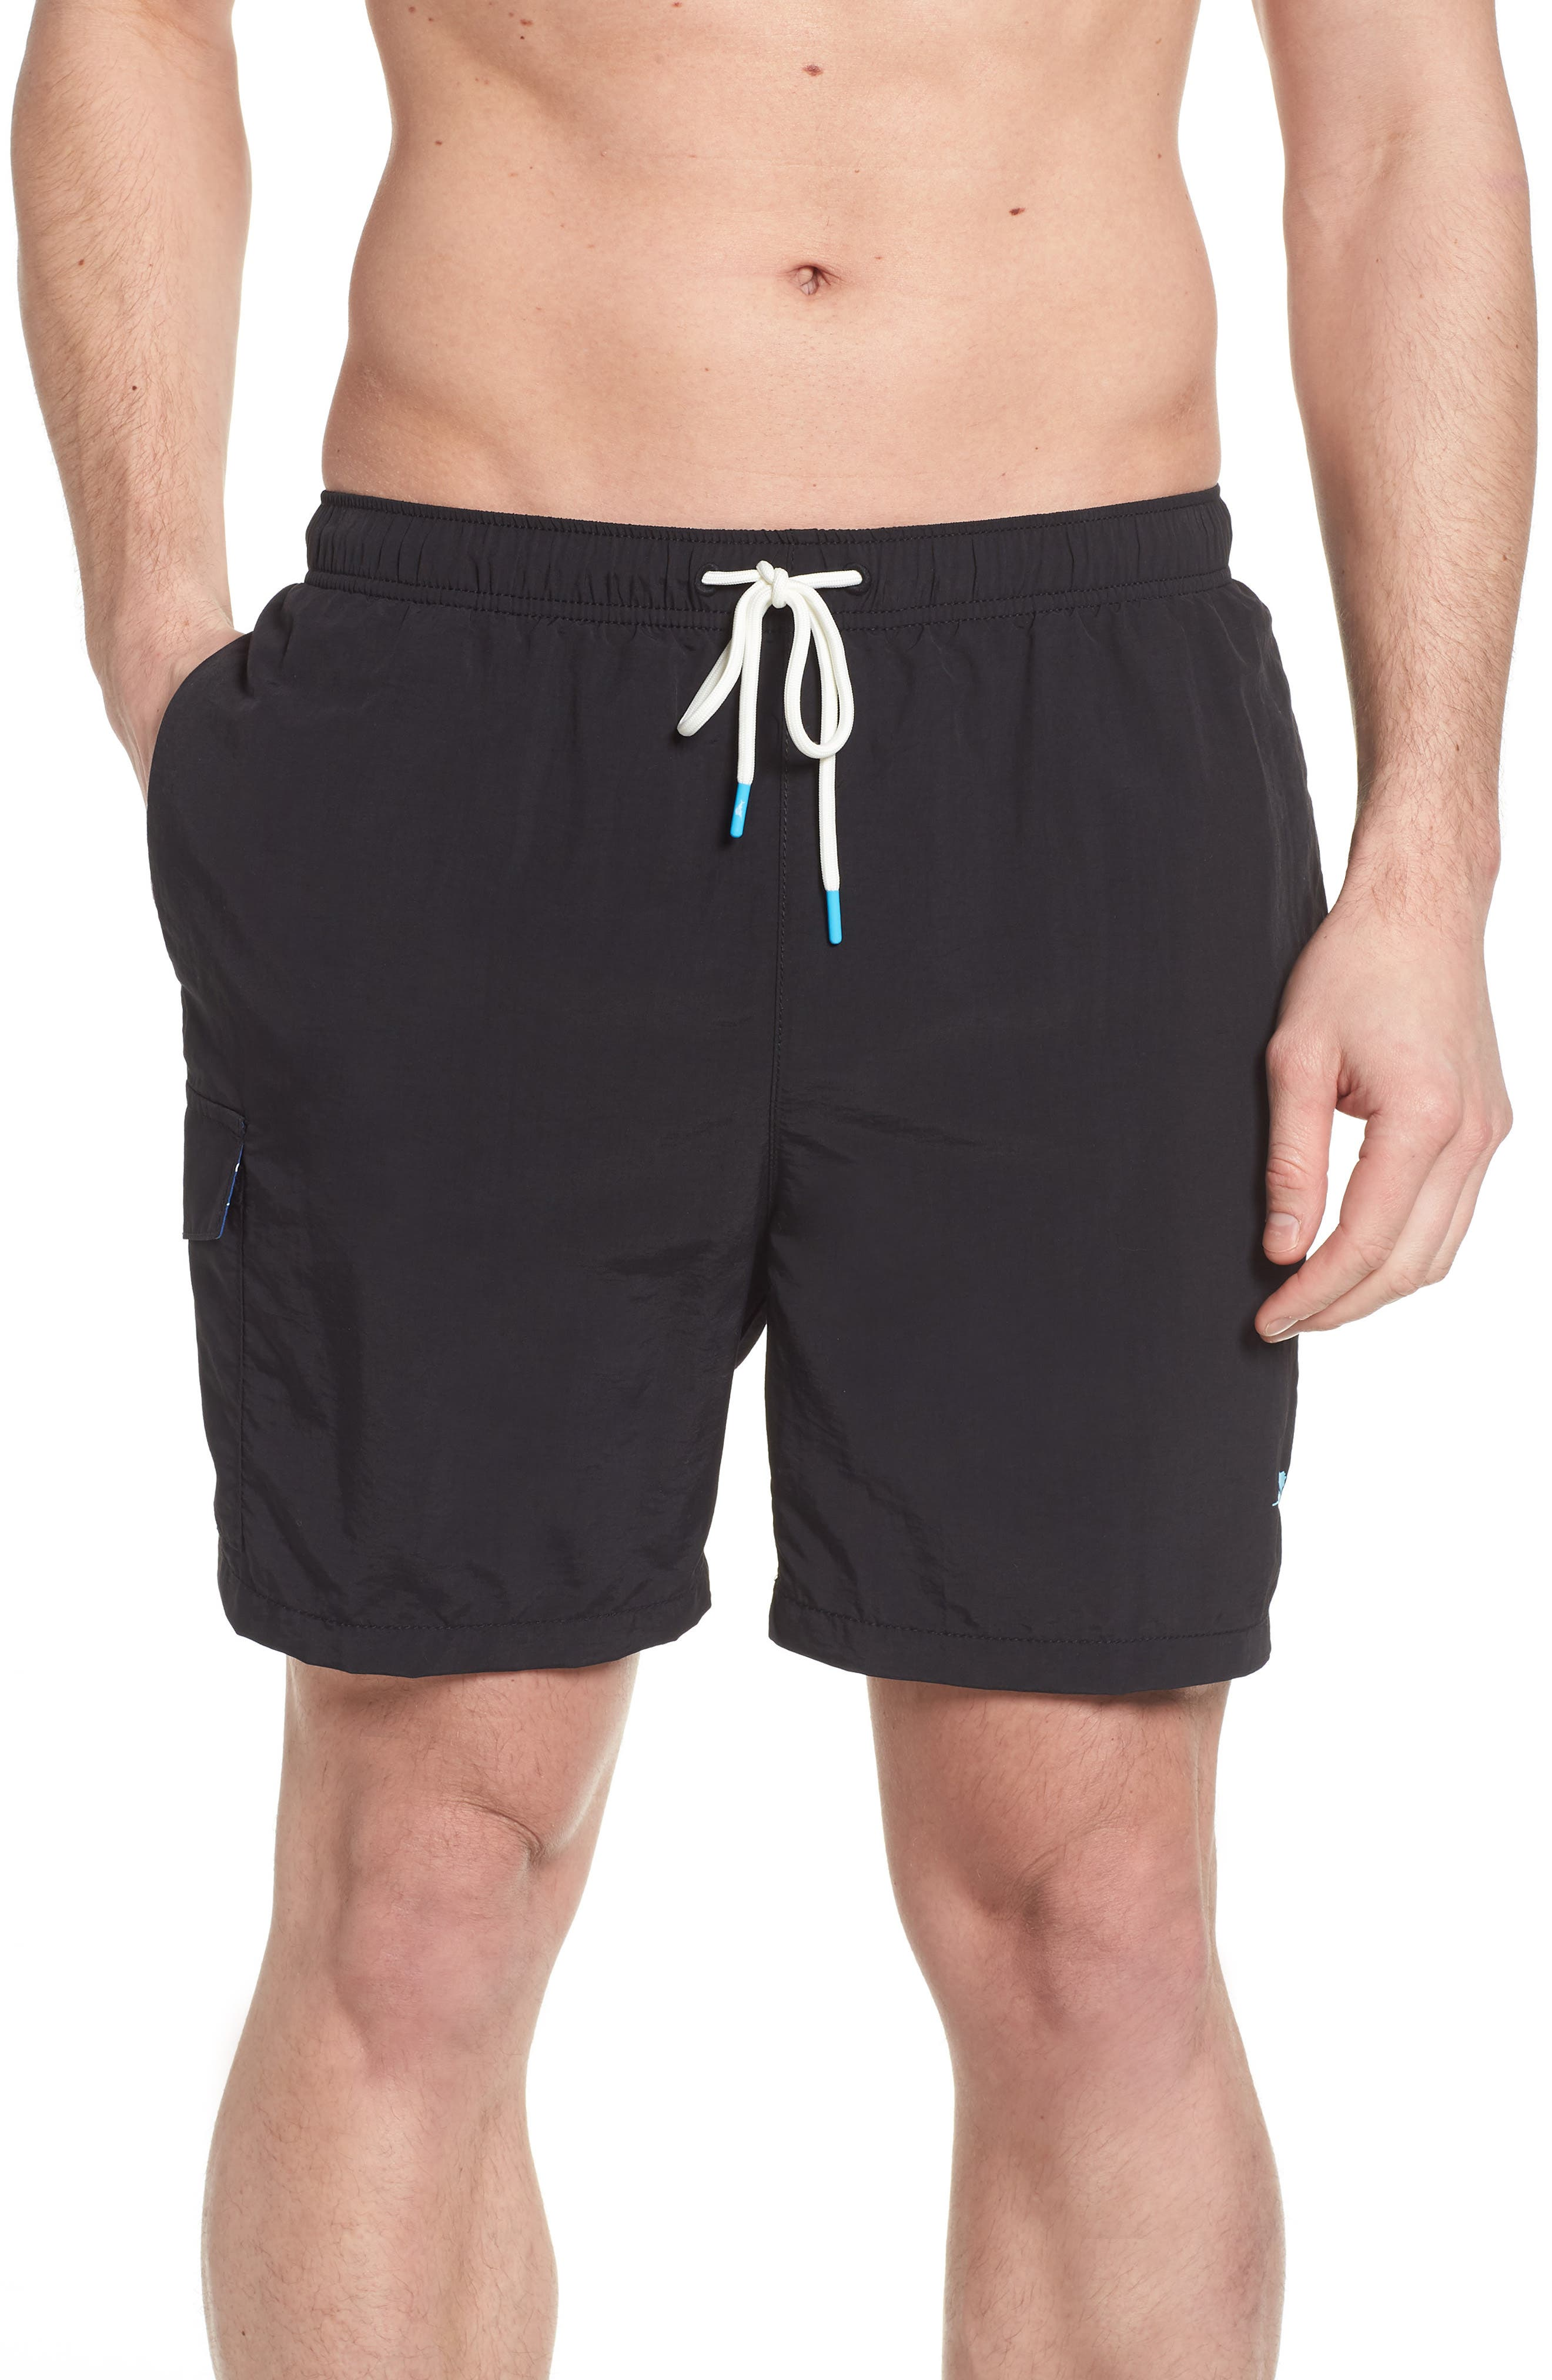 Naples Coast Swim Trunks,                             Main thumbnail 1, color,                             BLACK